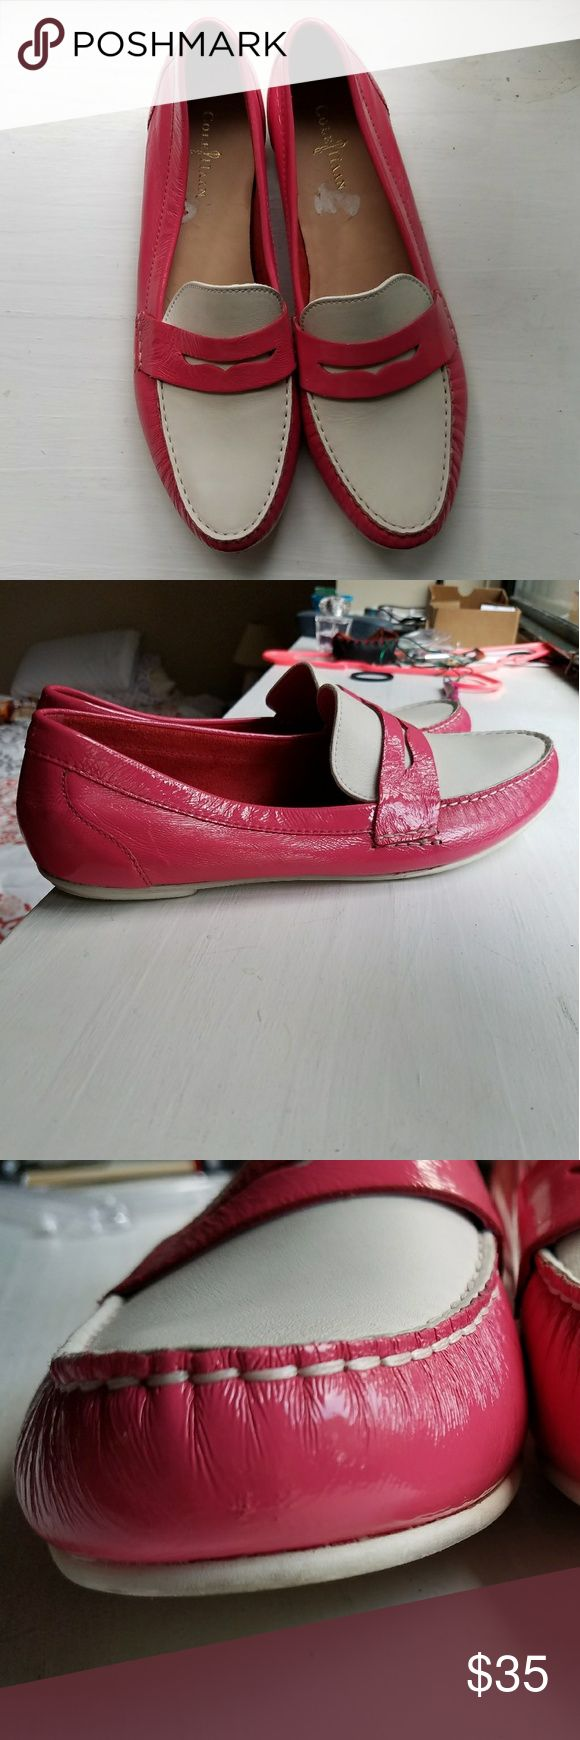 Cole Haan Penny Loafers Pink & White penny loafers in excellent condition Shoes Flats & Loafers